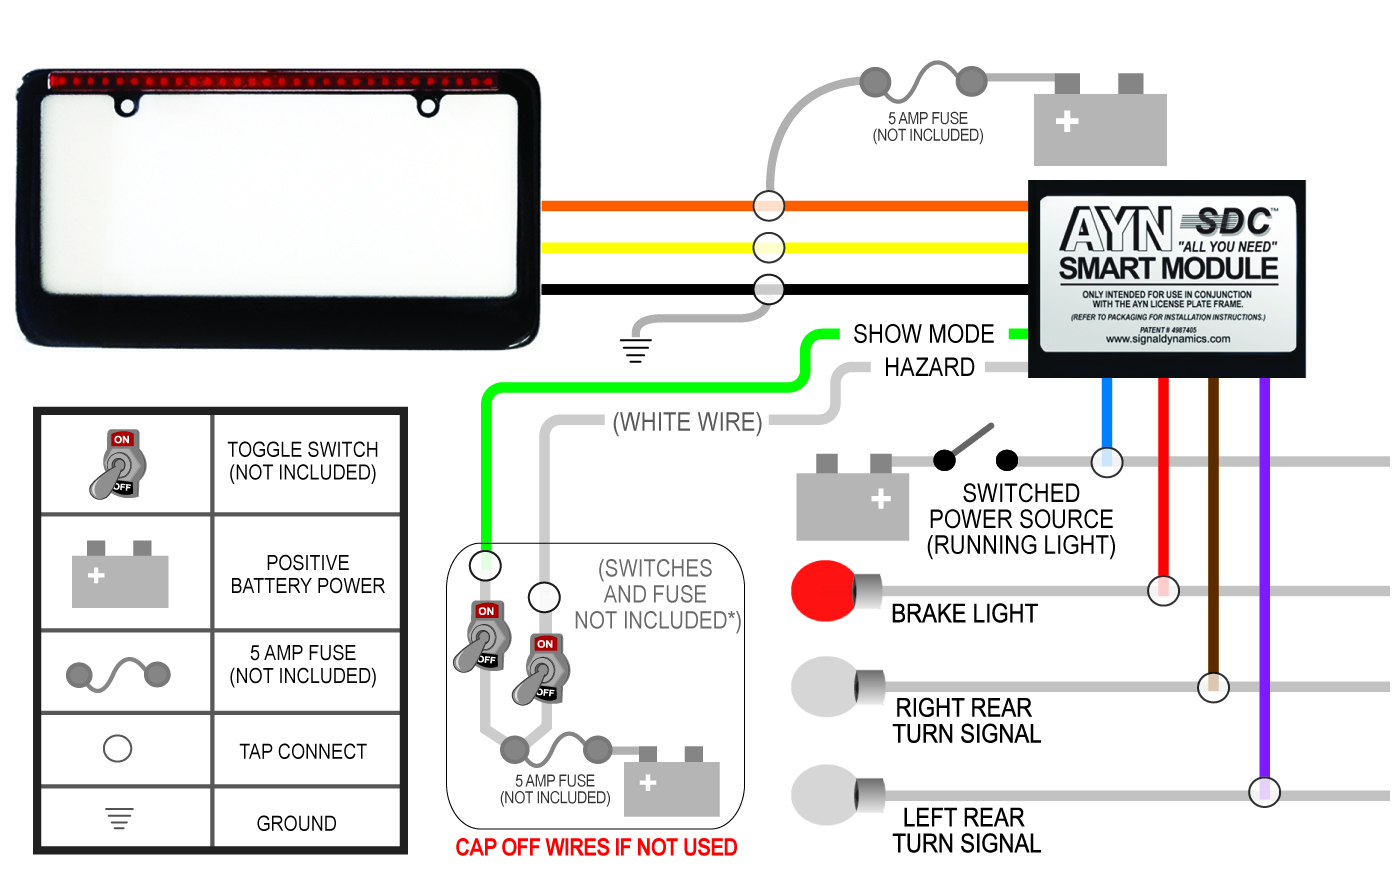 black auto wiring diagram?t=1399476781 black ayn automotive license plate frame & smart module combo Basic Turn Signal Wiring Diagram at aneh.co